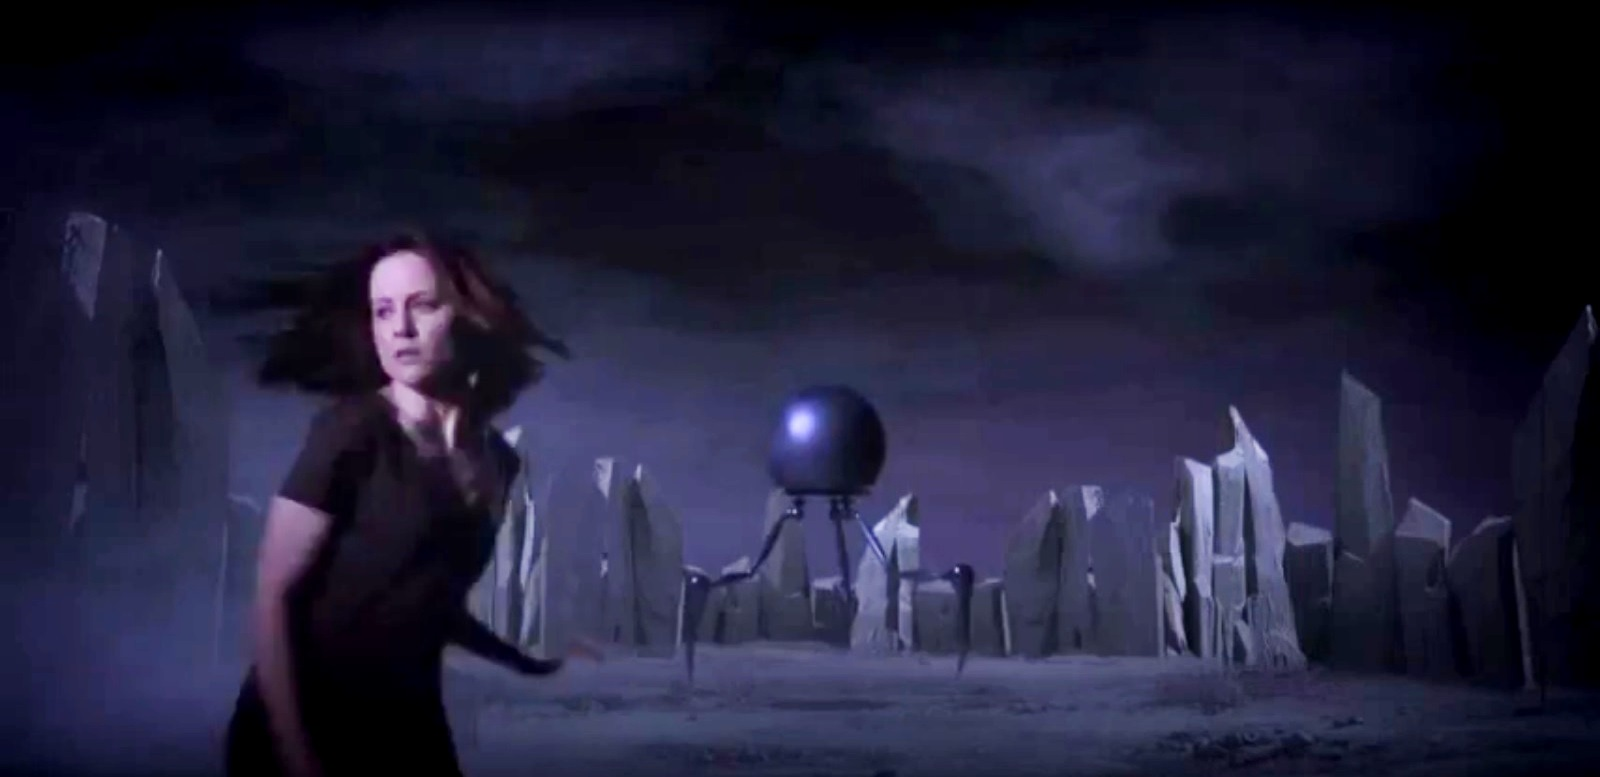 Ashley Galloway finds herself in another dimension facing alien machines in The Dark Sleep (2013)